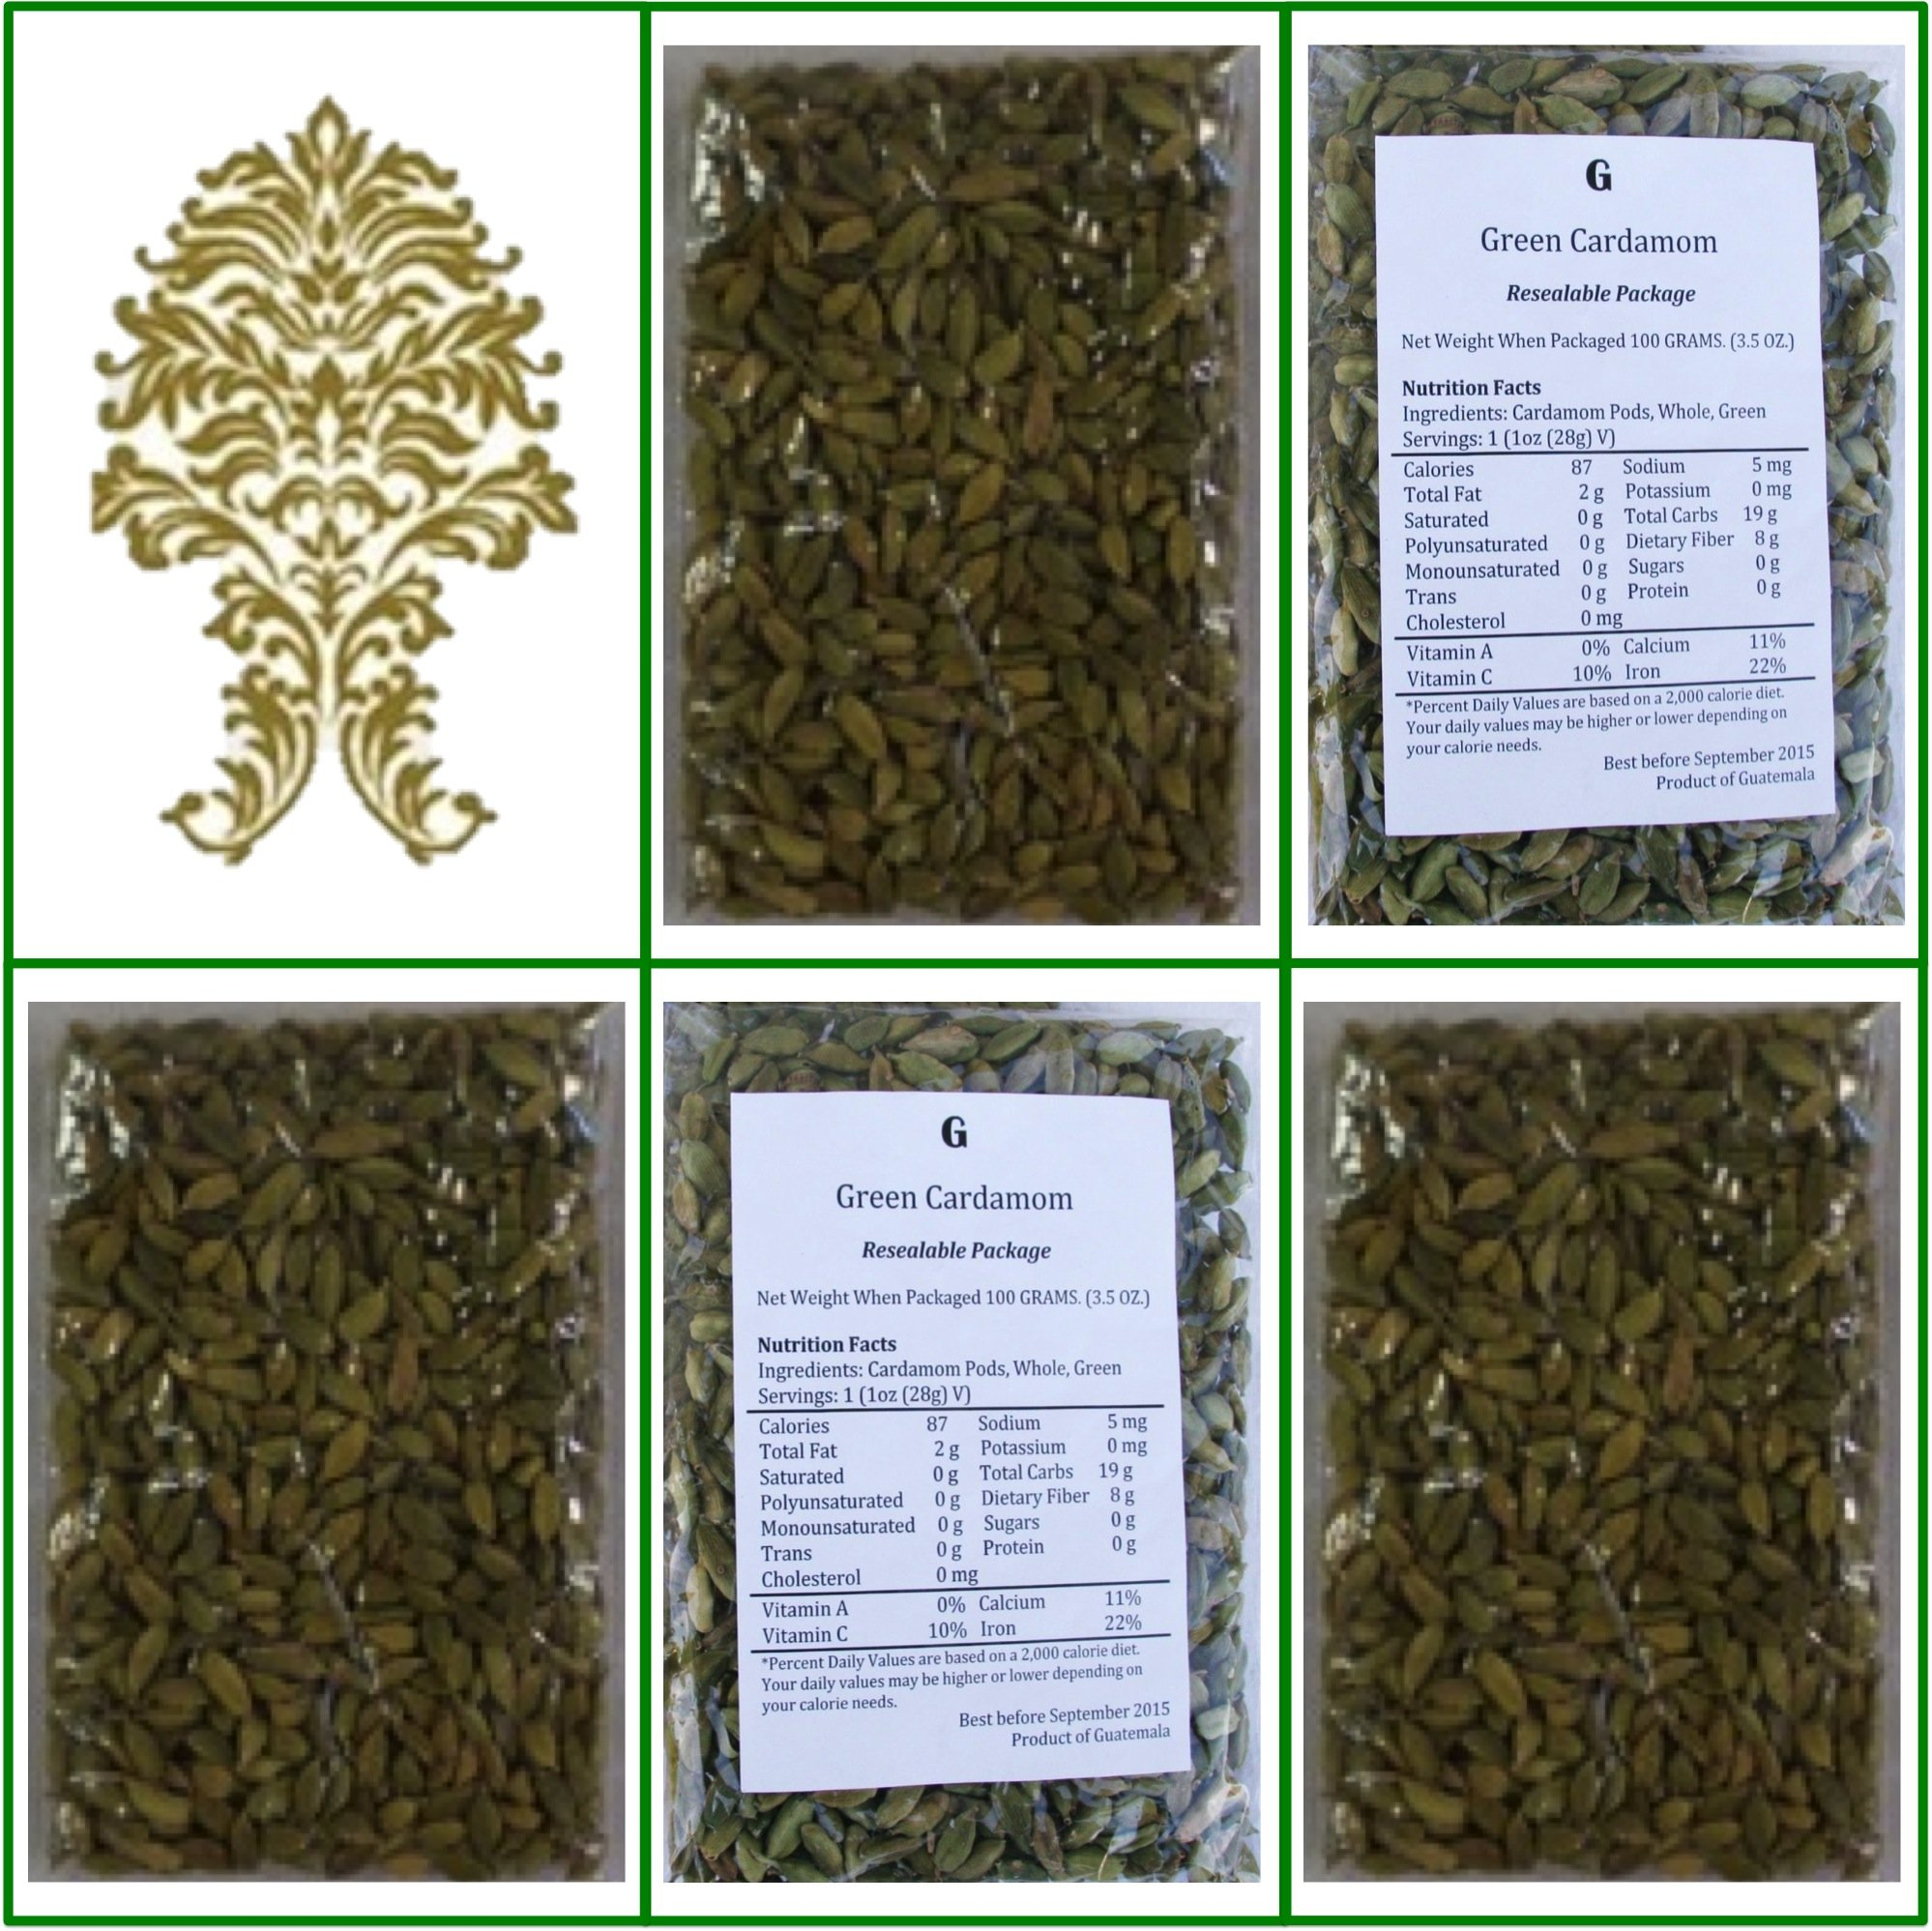 Natural Green Whole Cardamom Pods (elaichi, elachi, hal) - 17.6 Oz, 500g. by GaneshaSpice (Image #1)